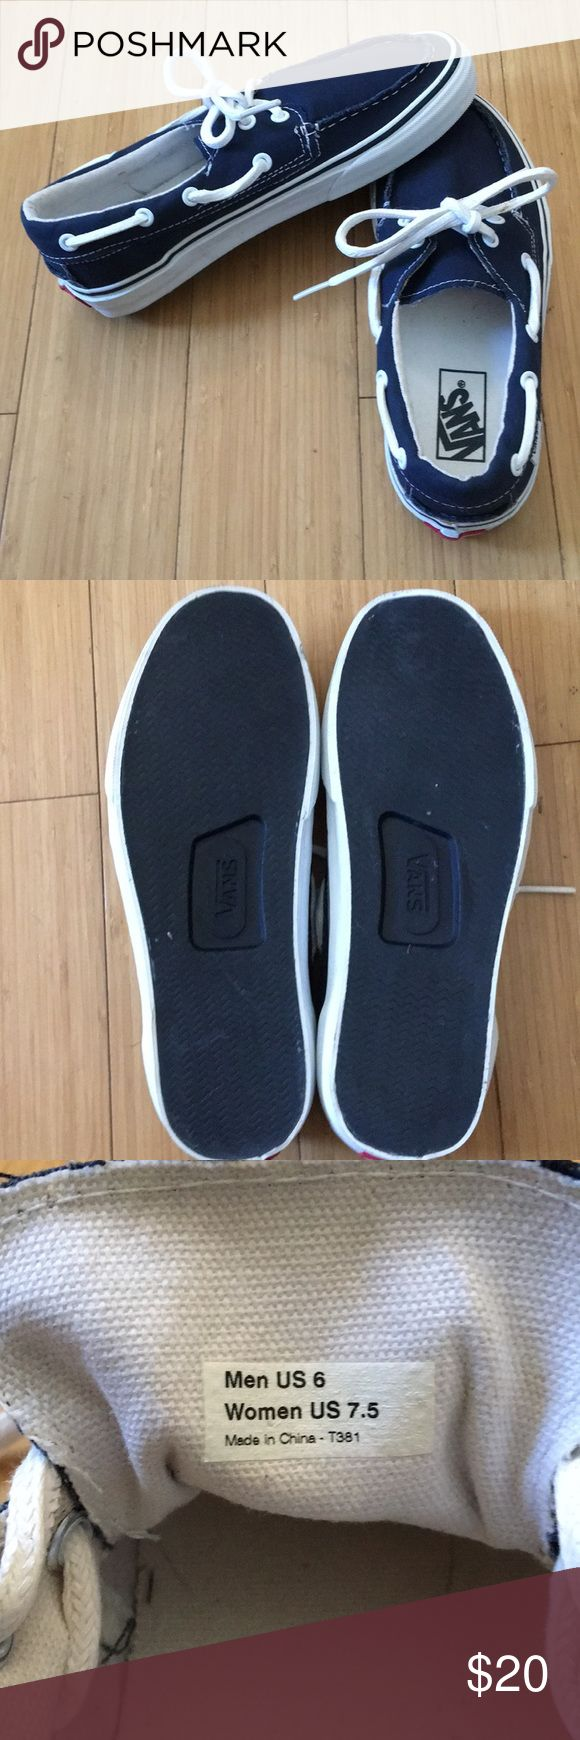 Vans boat shoes Navy with white details Never worn Men's 6/Women's 7.5 Vans Shoes Sneakers